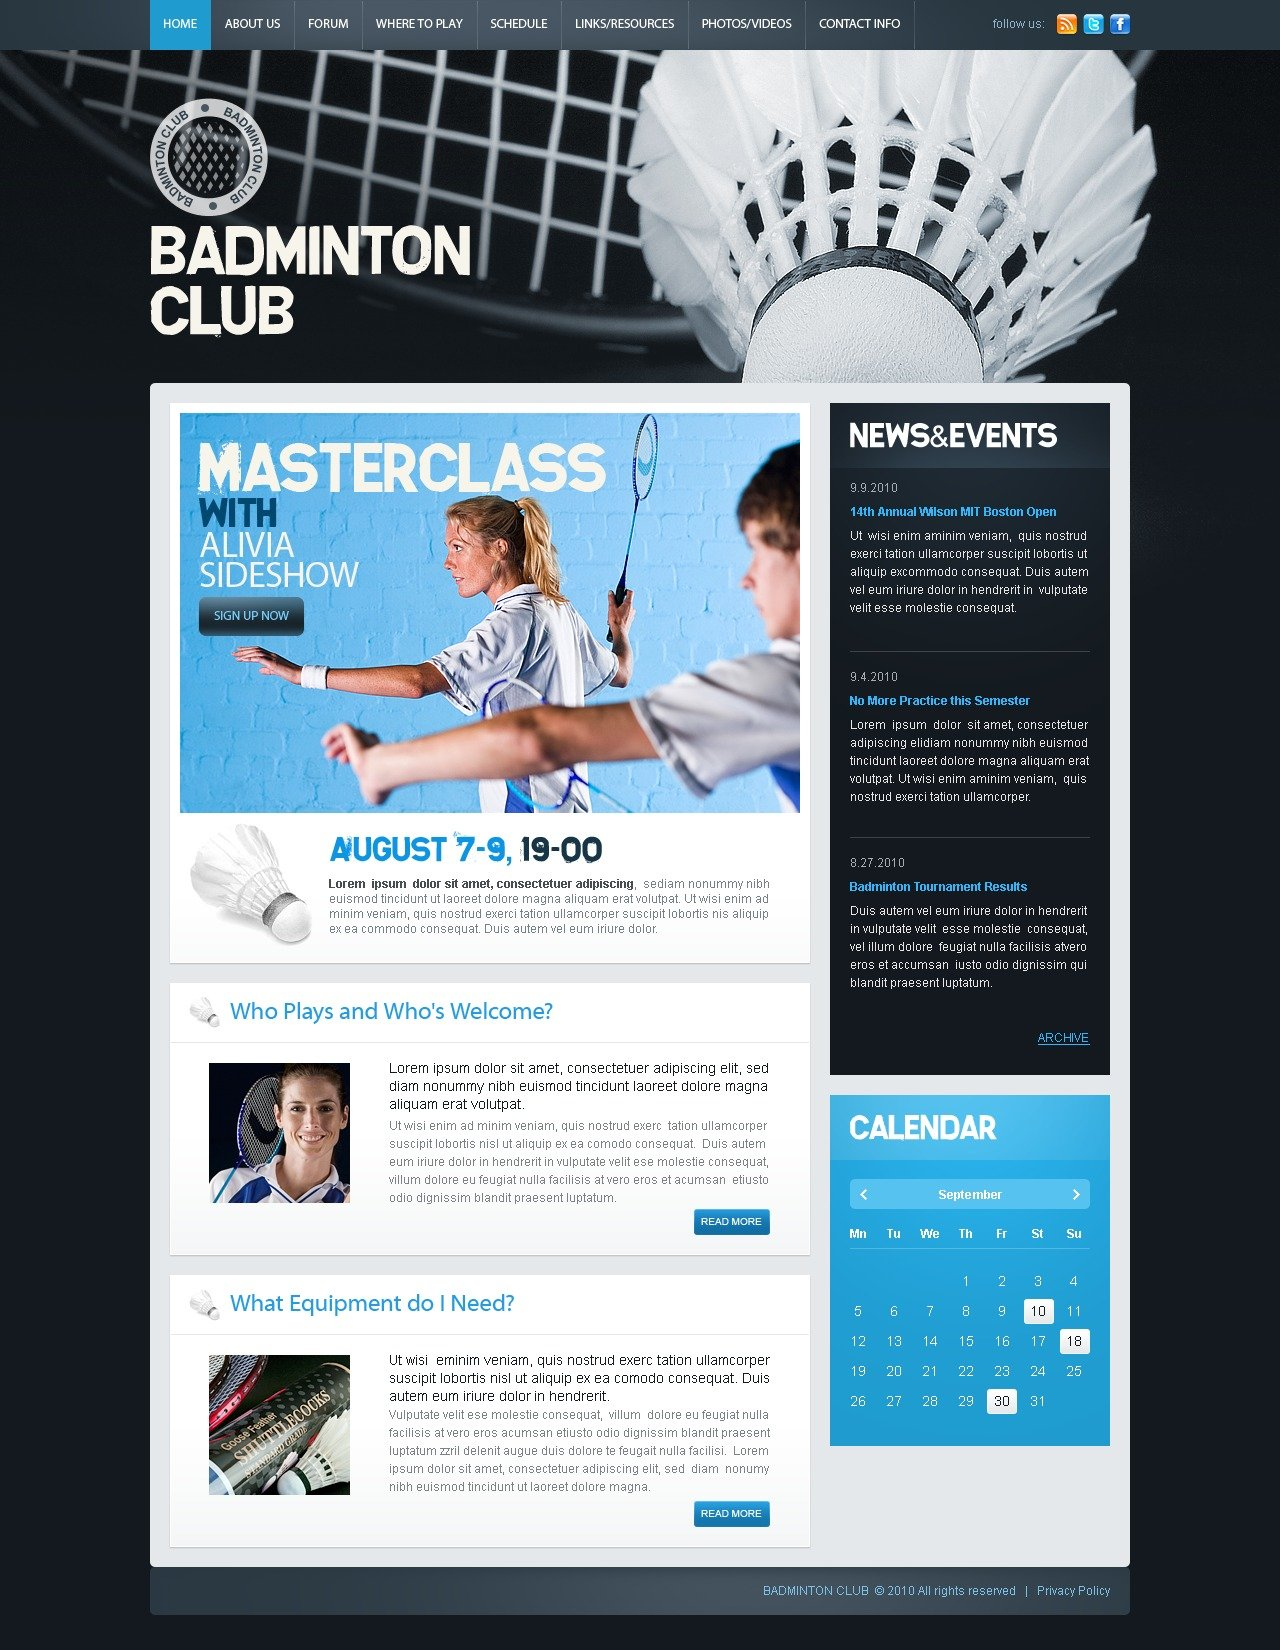 The Badminton Club Sport PSD Design 54436, one of the best PSD templates of its kind (sport, wide), also known as Badminton club sport PSD template, fan PSD template, team PSD template, game PSD template, results PSD template, coach PSD template, entertainment PSD template, joy PSD template, events school PSD template, teaching PSD template, training PSD template, programs PSD template, instructors PSD template, trainers PSD template, membership and related with Badminton club sport, fan, team, game, results, coach, entertainment, joy, events school, teaching, training, programs, instructors, trainers, membership, etc.